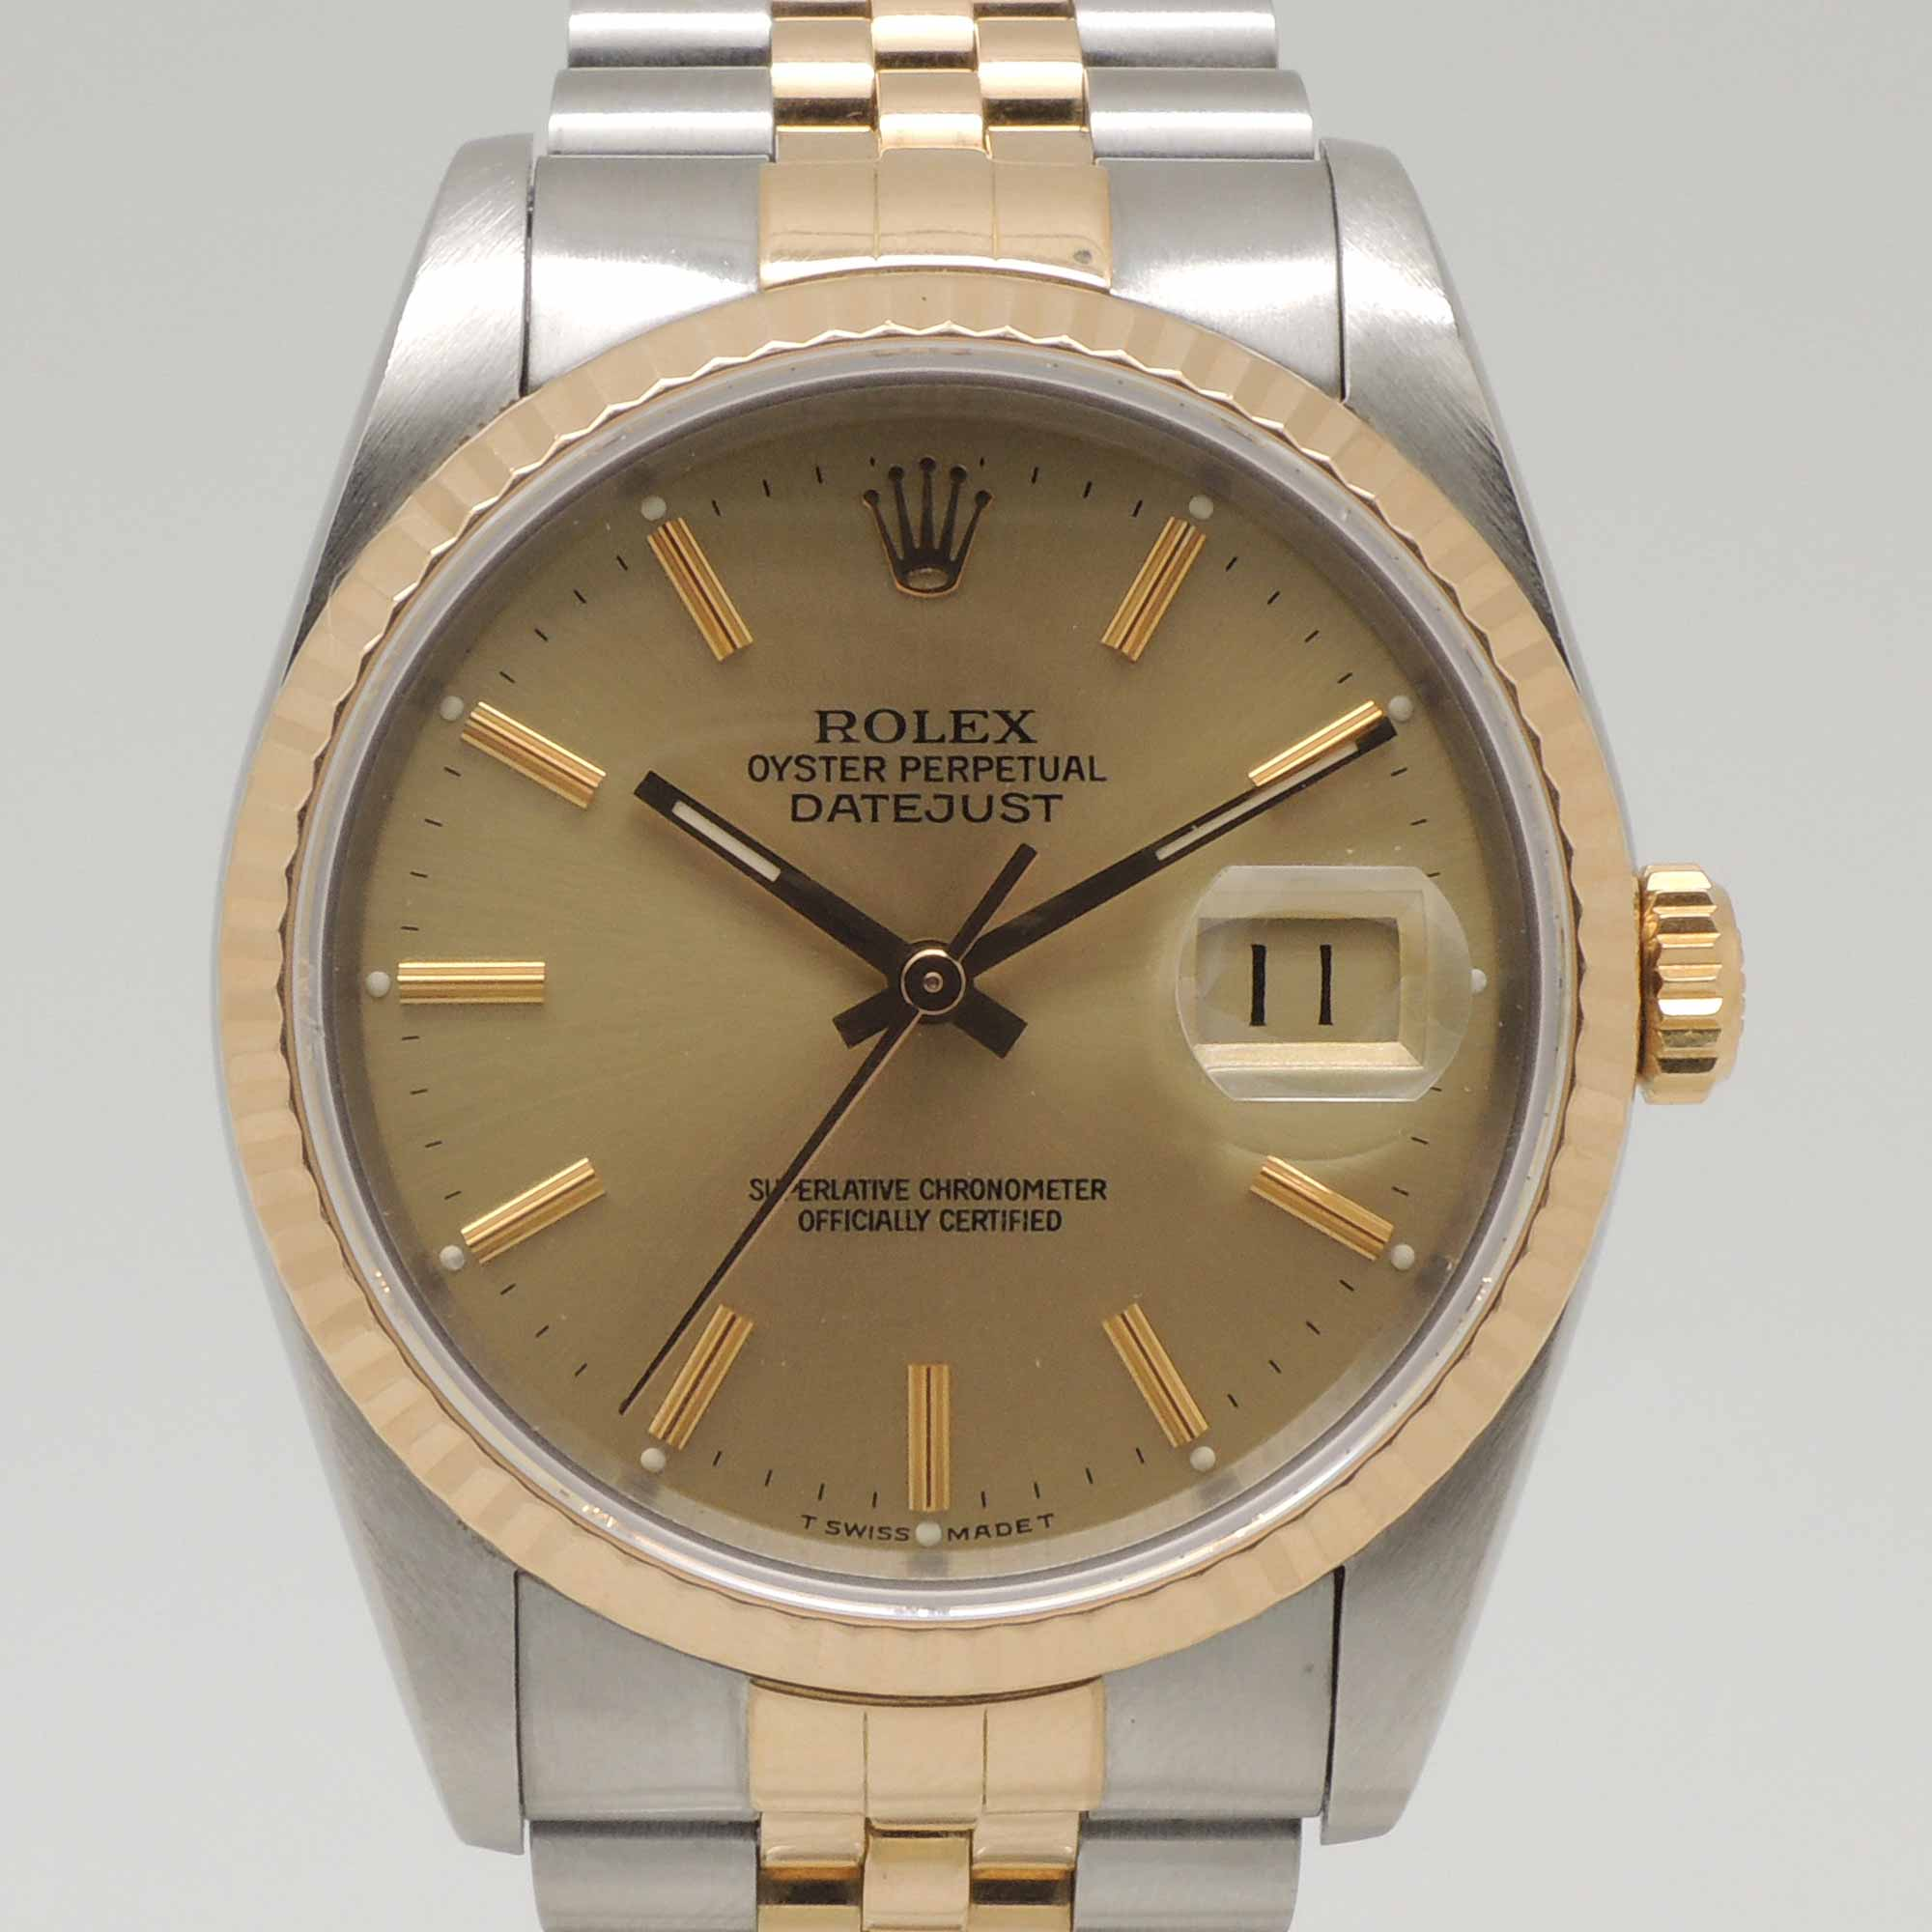 Rolex Second Hand Rolex Datejust 16233 Buy And Sell Second Hand Rolex